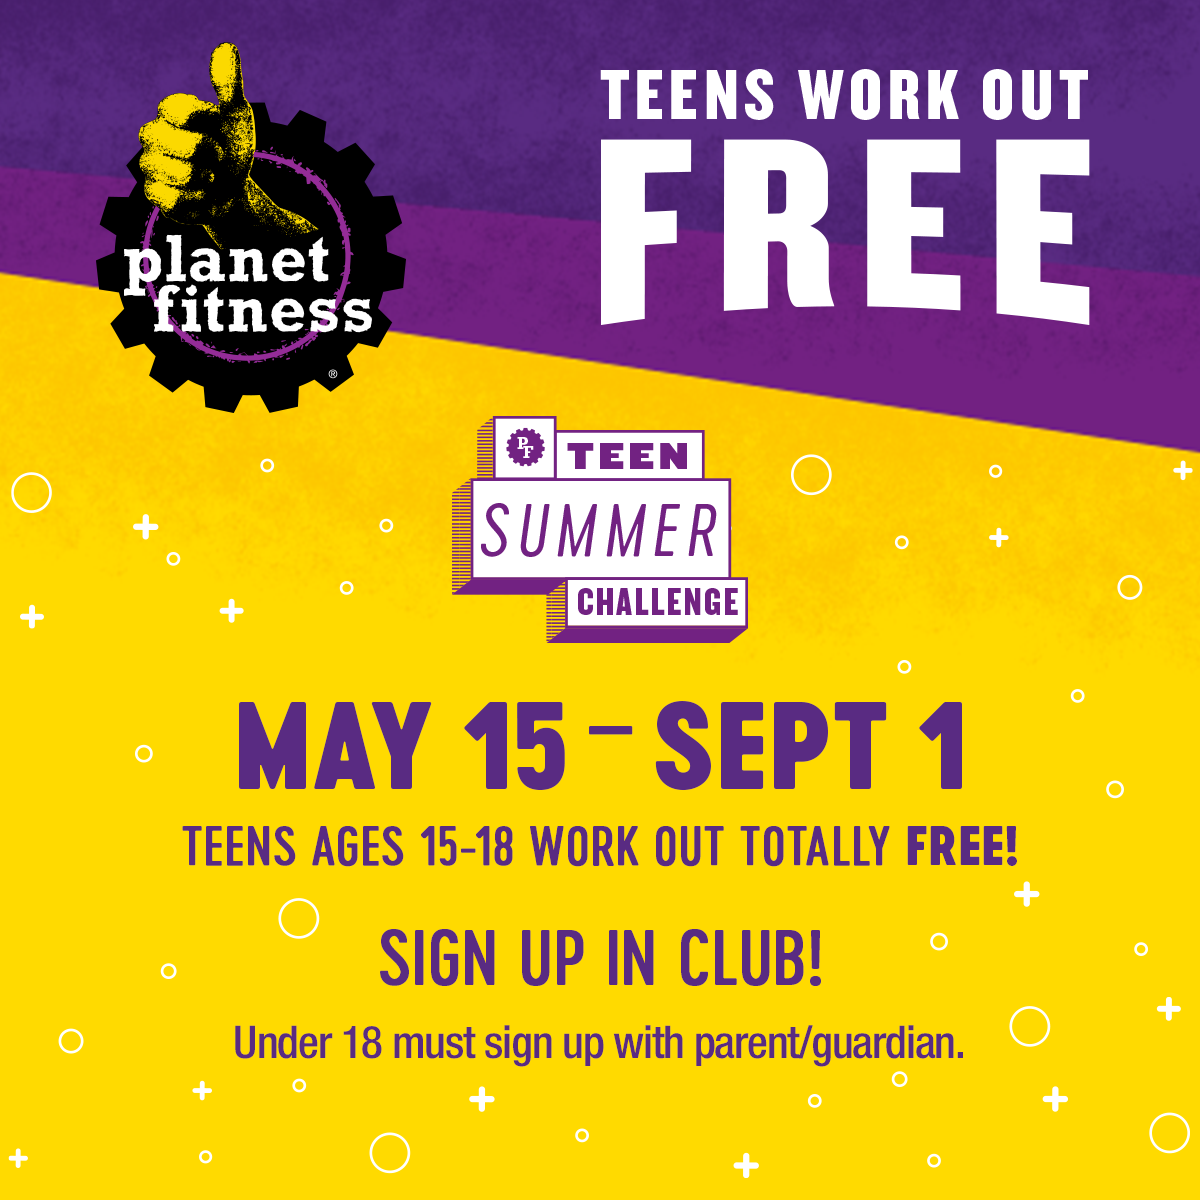 planet fitness teen challenge.png